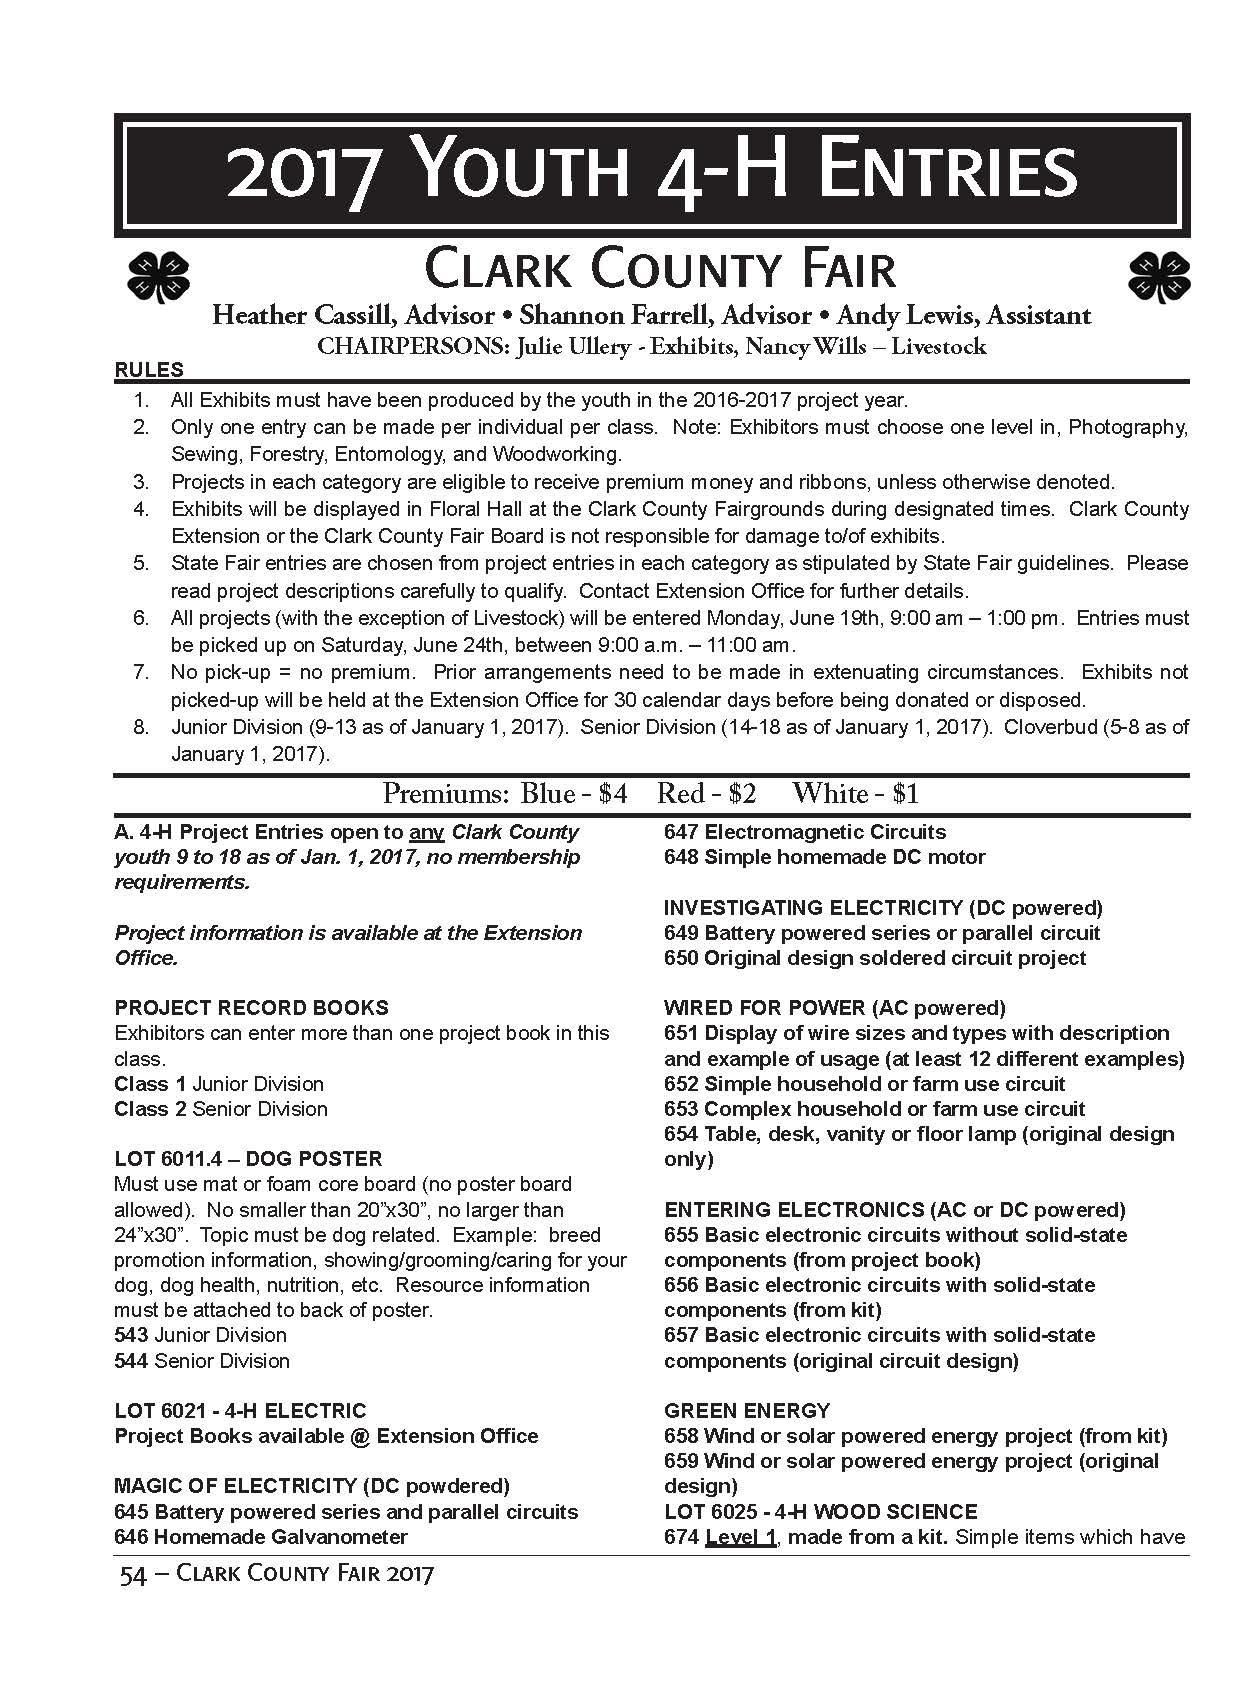 4 H Fair Entry Information Clark County Science Series And Parallel Circuits 4th Grade Circuit